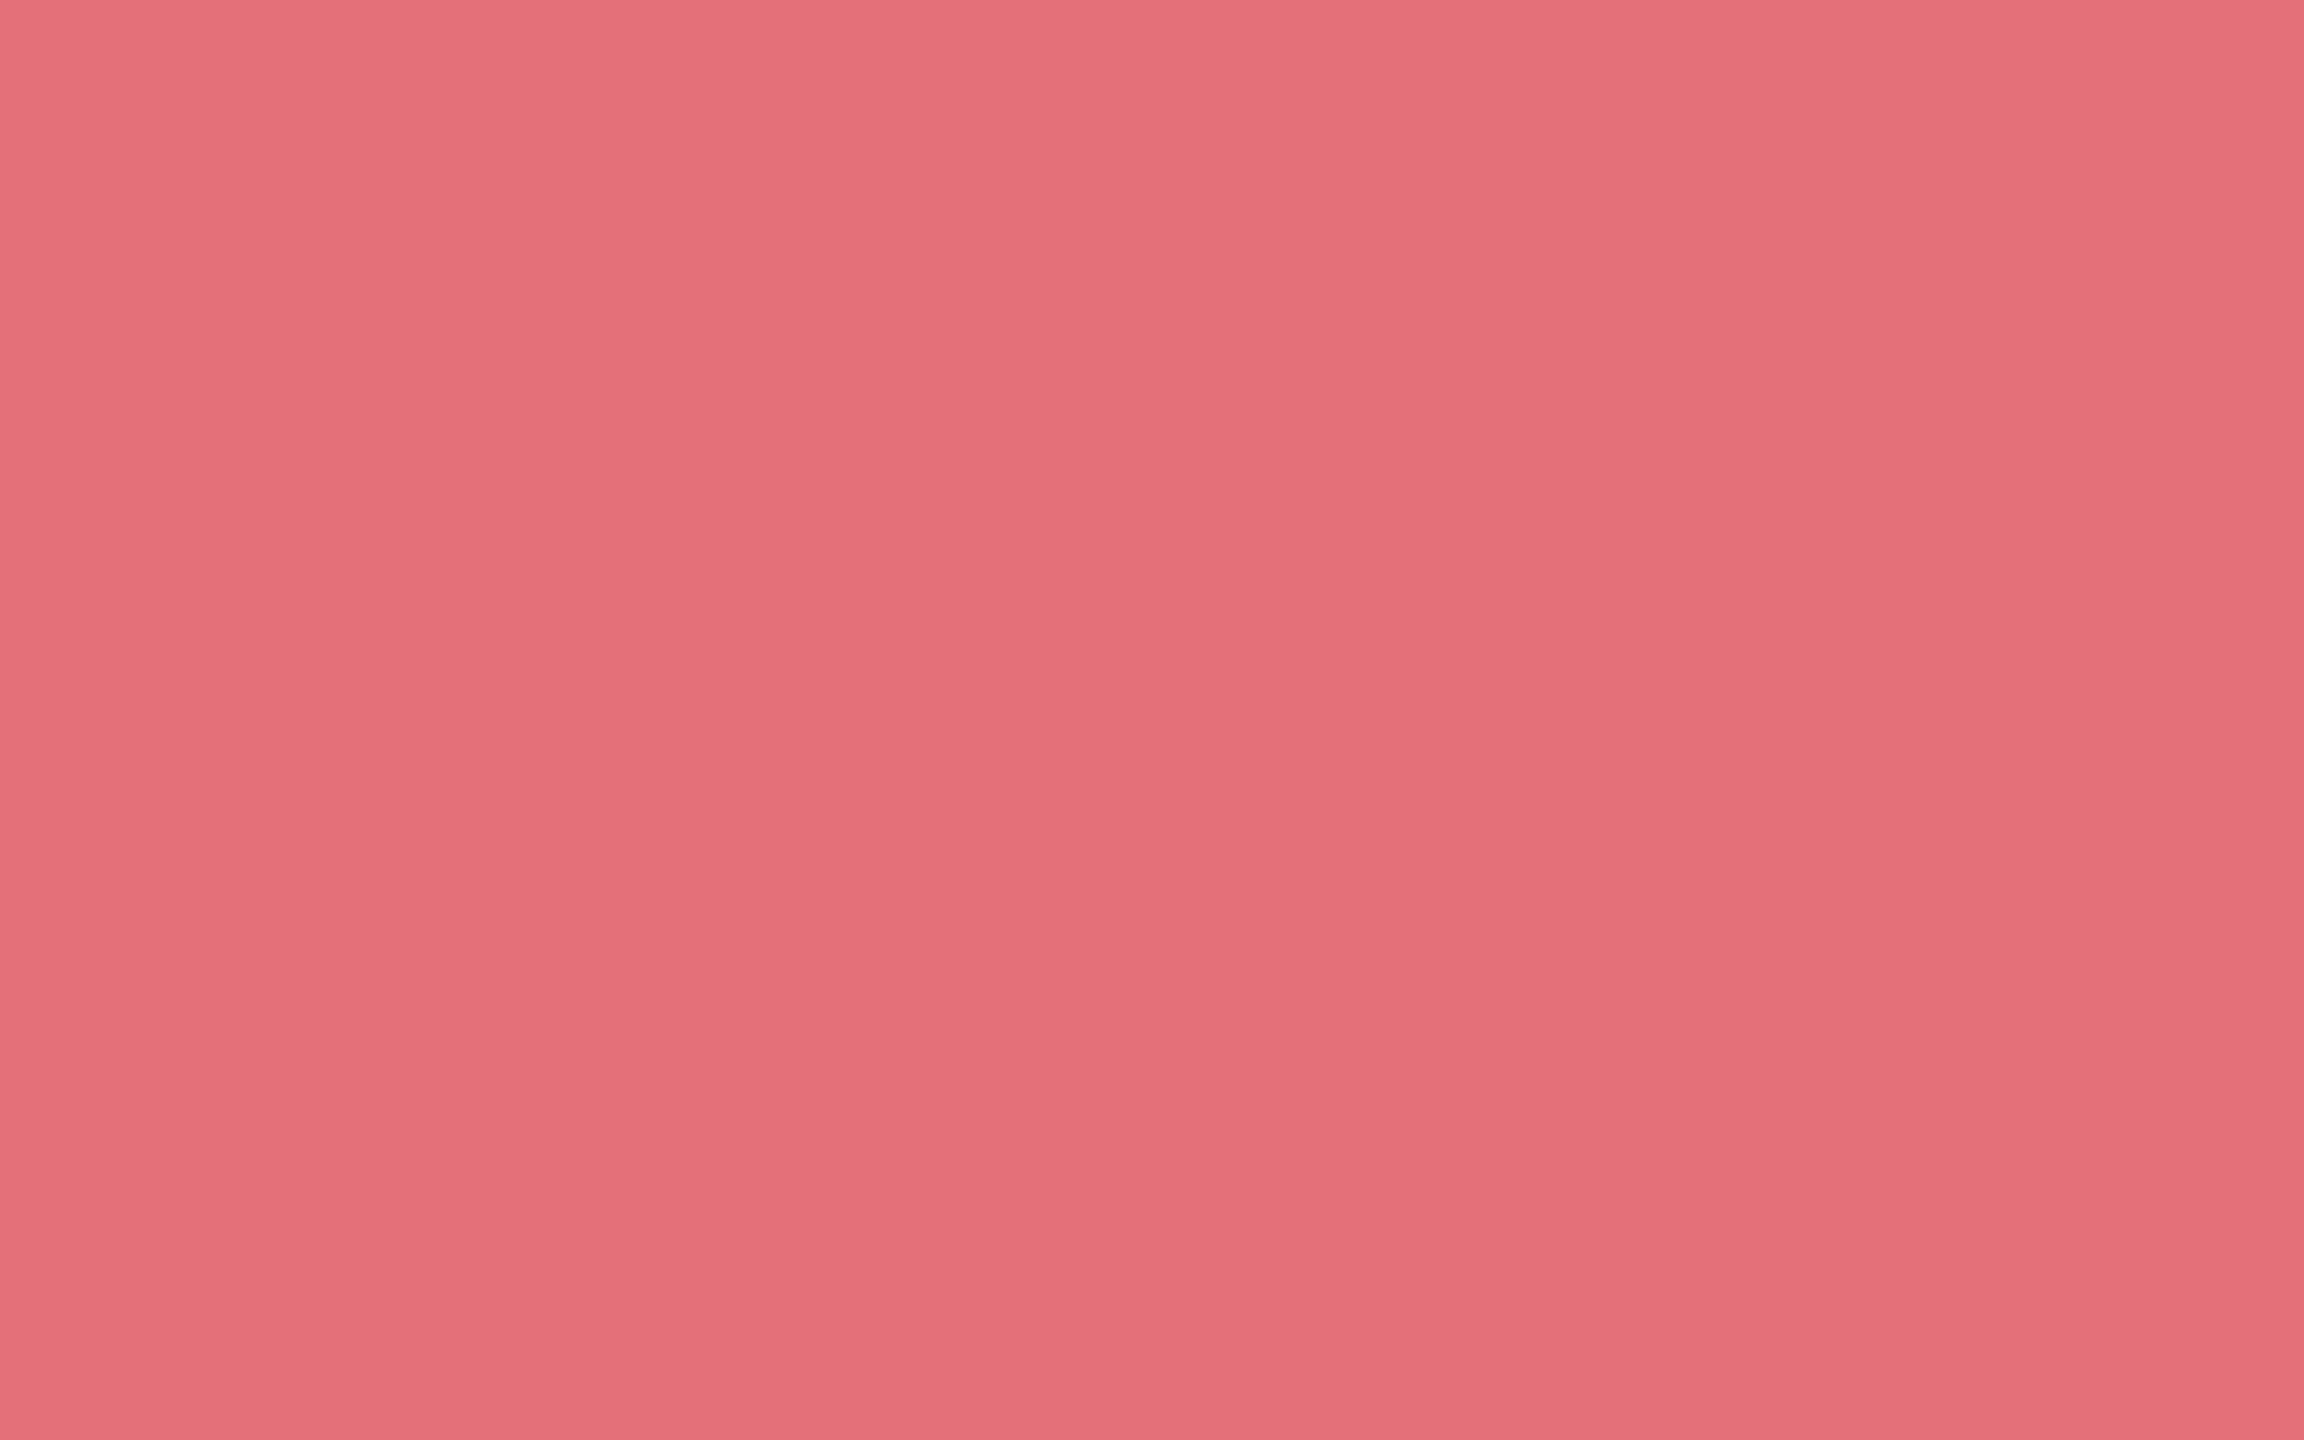 2304x1440 Candy Pink Solid Color Background